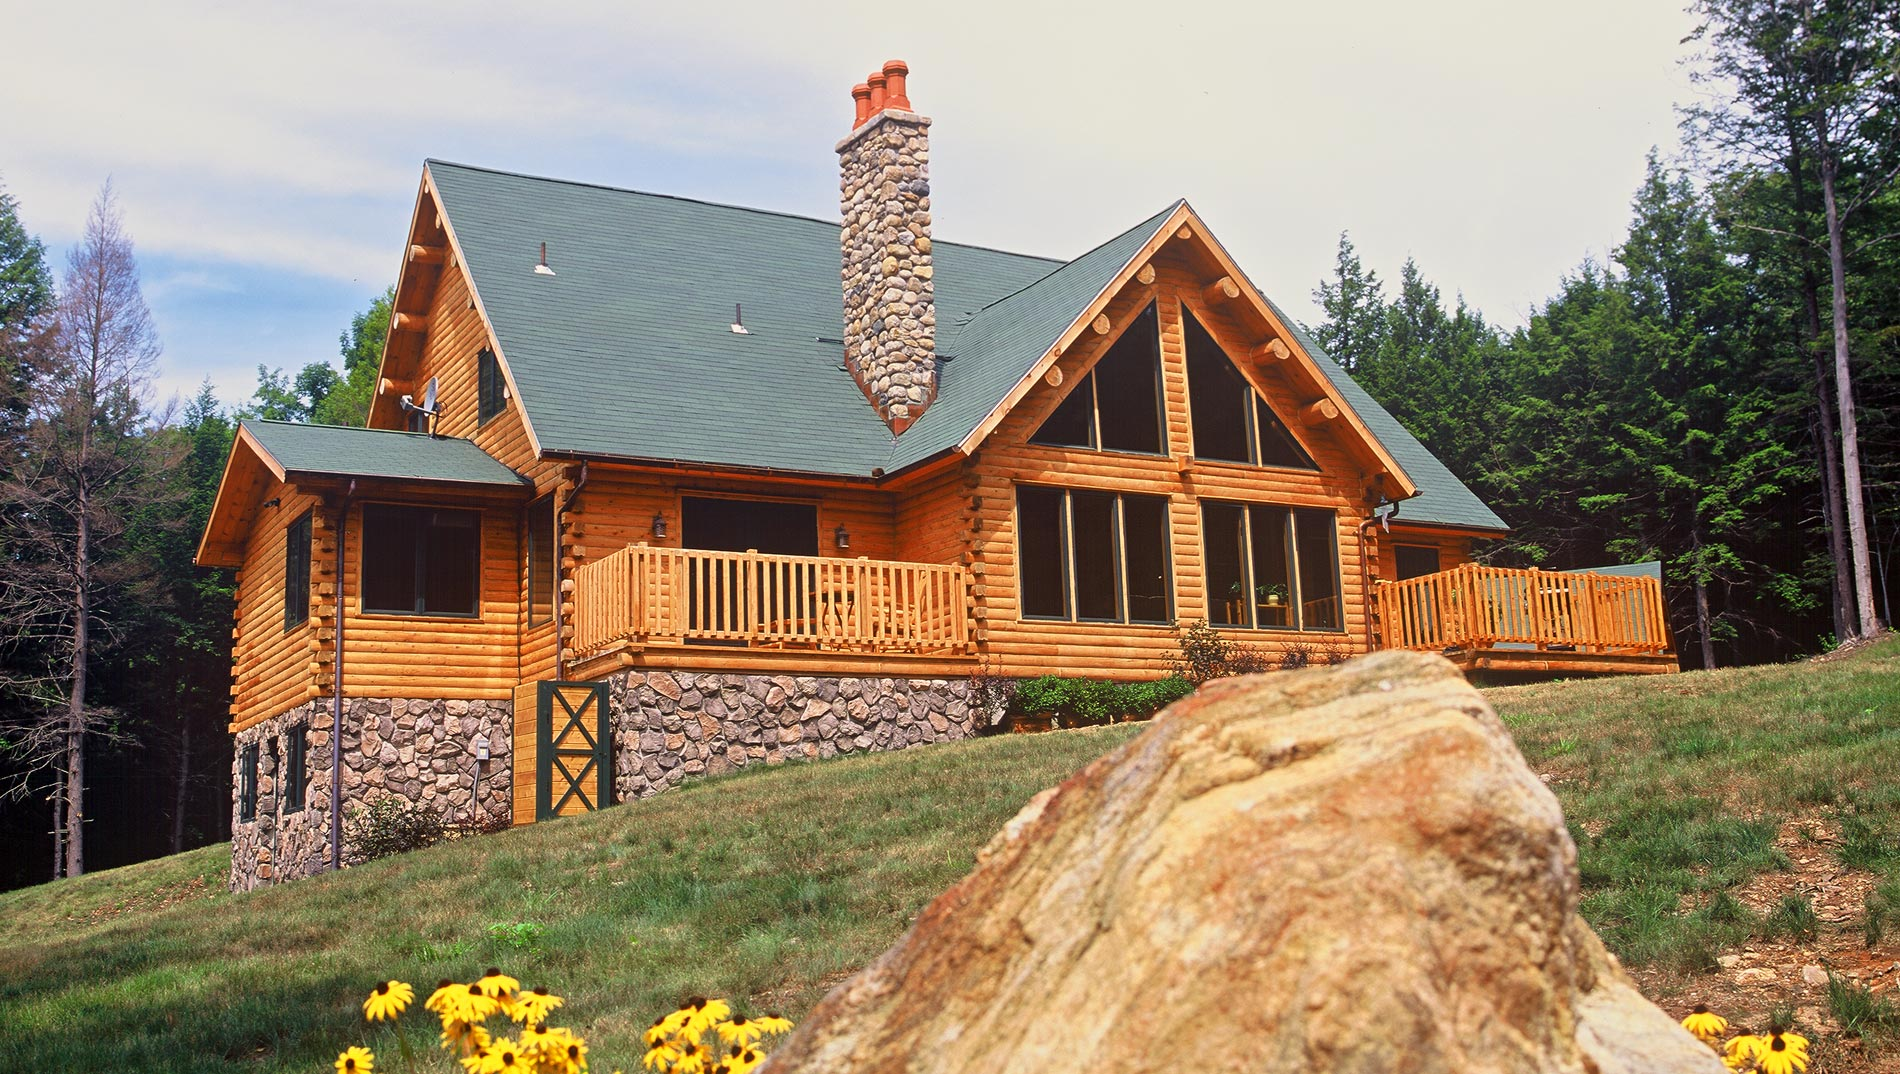 Ward cedar log homes log homes and log cabin kits for Log cabins homes